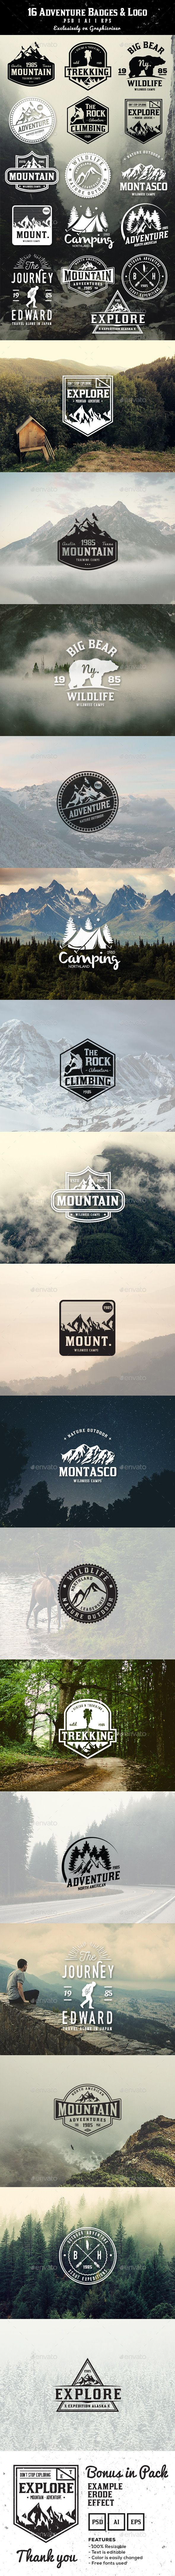 16 Adventure Badges & Logo Template #design Download: http://graphicriver.net/item/16-adventure-badges-logo/11973456?ref=ksioks